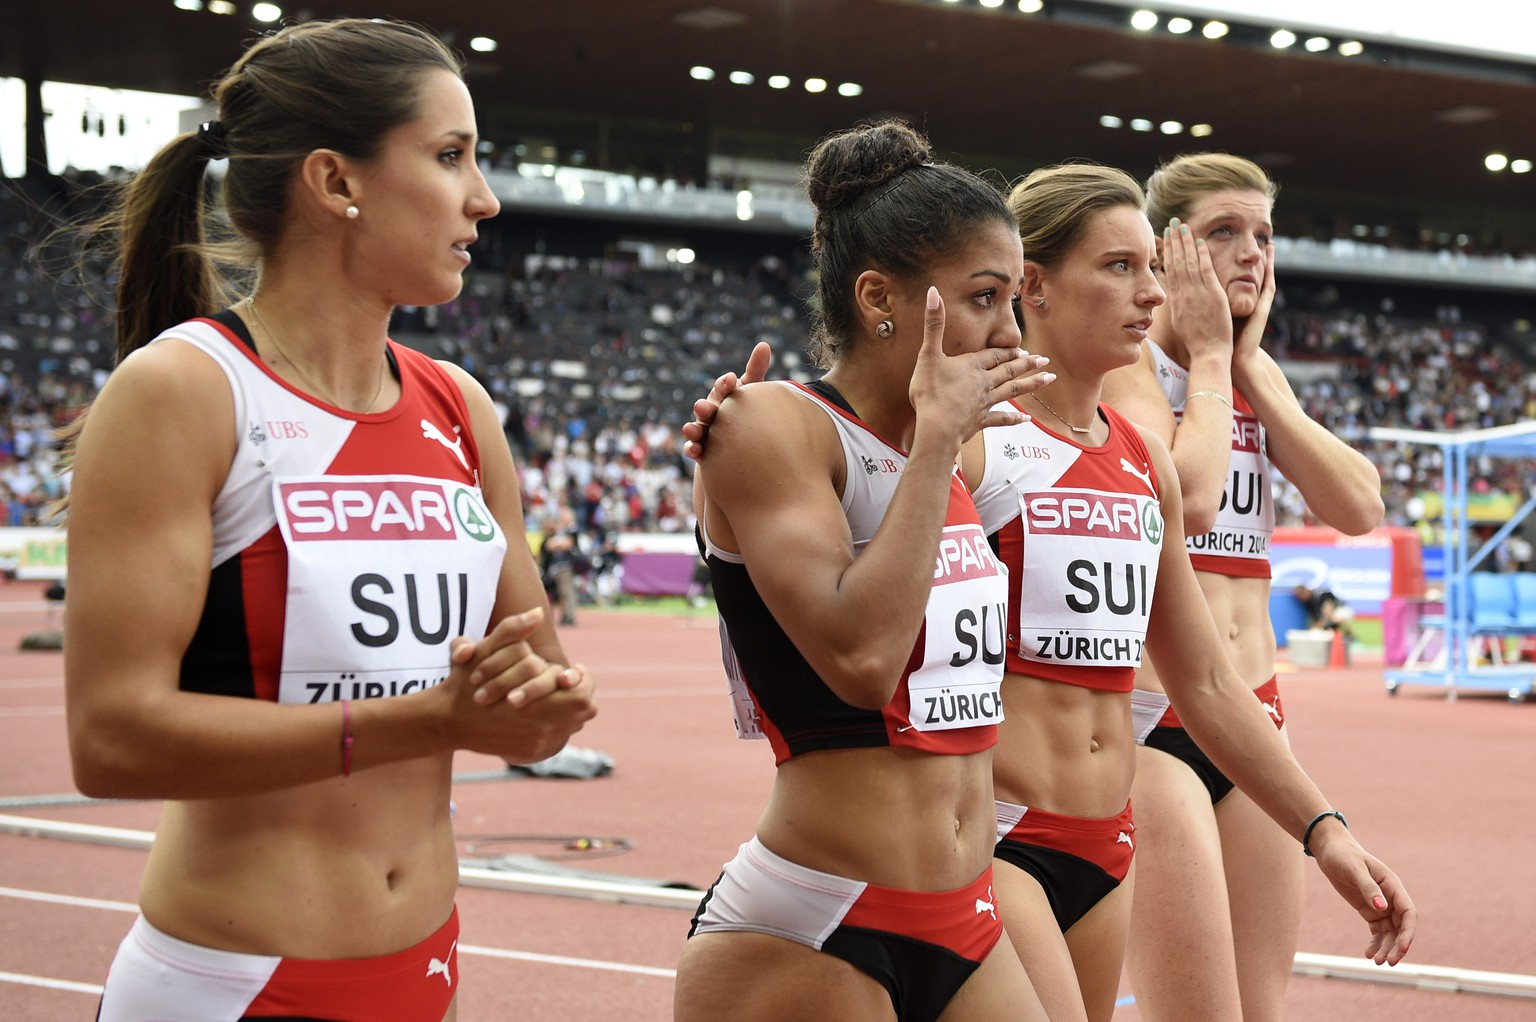 Switzerland's Marisa Lavanchy, Mujinga Kambundji, Ellen Sprunger and Lea Sprunger, from left to right, react after Kambundji lost the baton at the start of the women's 4x100m relay final, at the sixth day of the European Athletics Championships in the Letzigrund Stadium in Zurich, Switzerland, Sunday, August 17, 2014. (KEYSTONE/Ennio Leanza)